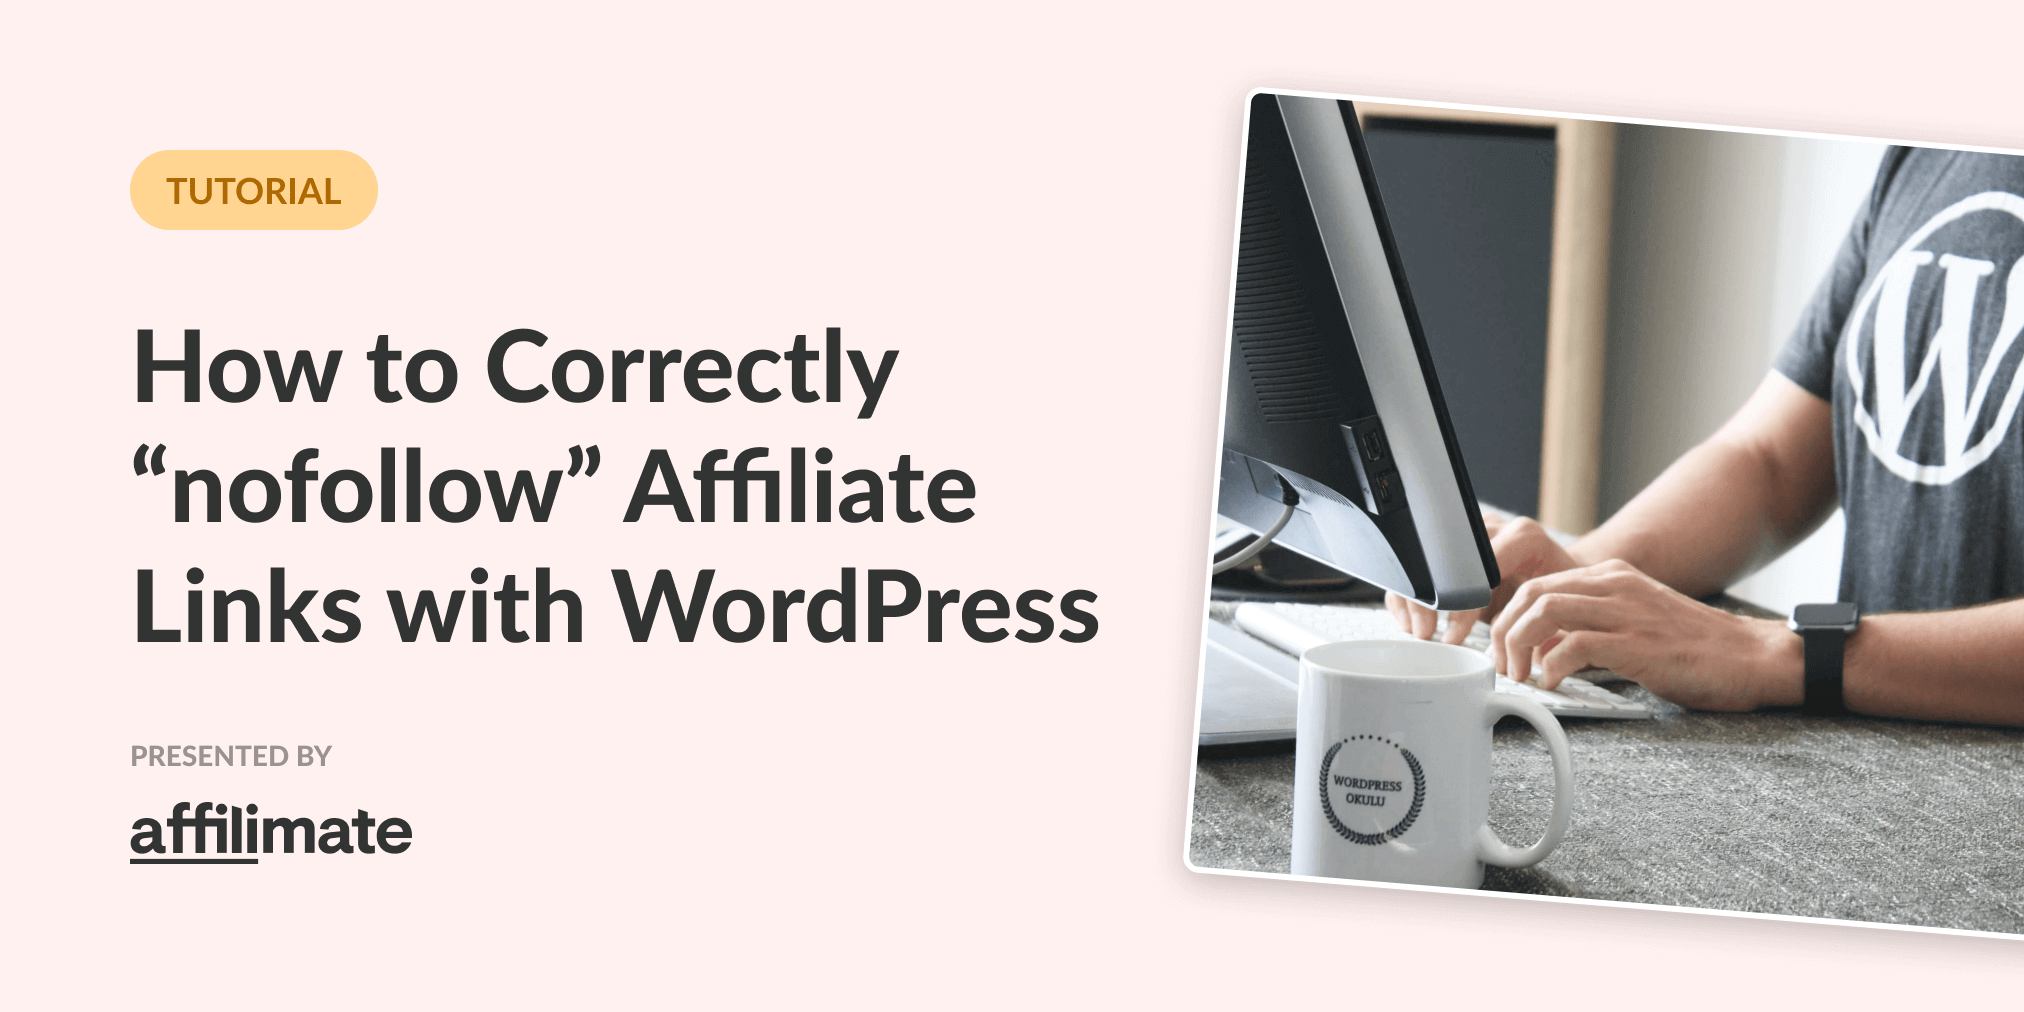 "How to Correctly ""nofollow"" Affiliate Links with WordPress"